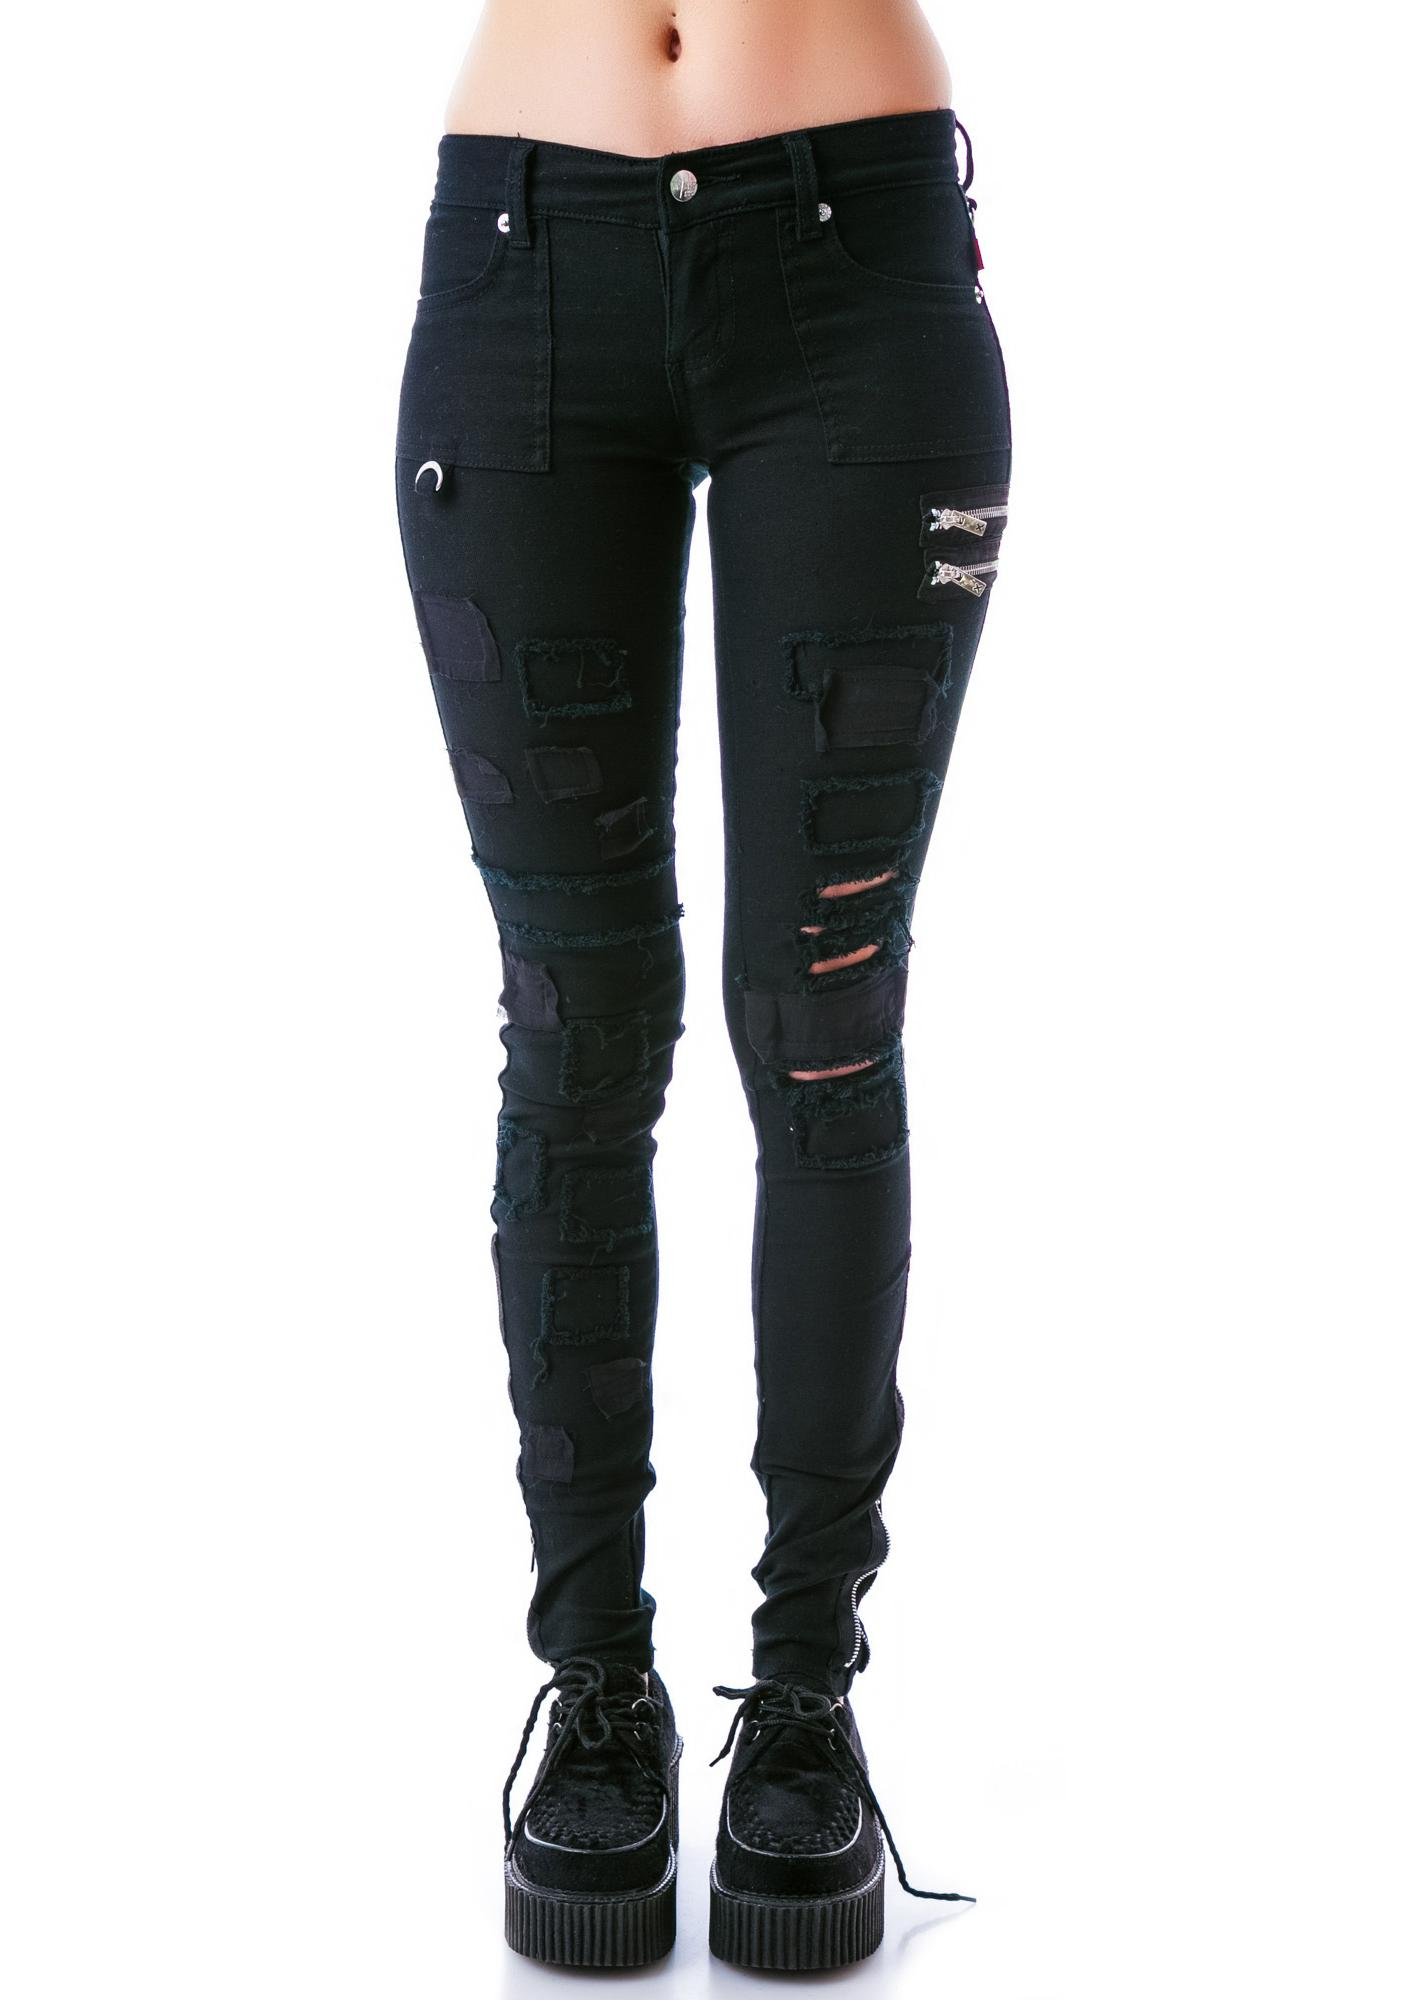 Tripp NYC Hard as Nails Jeans